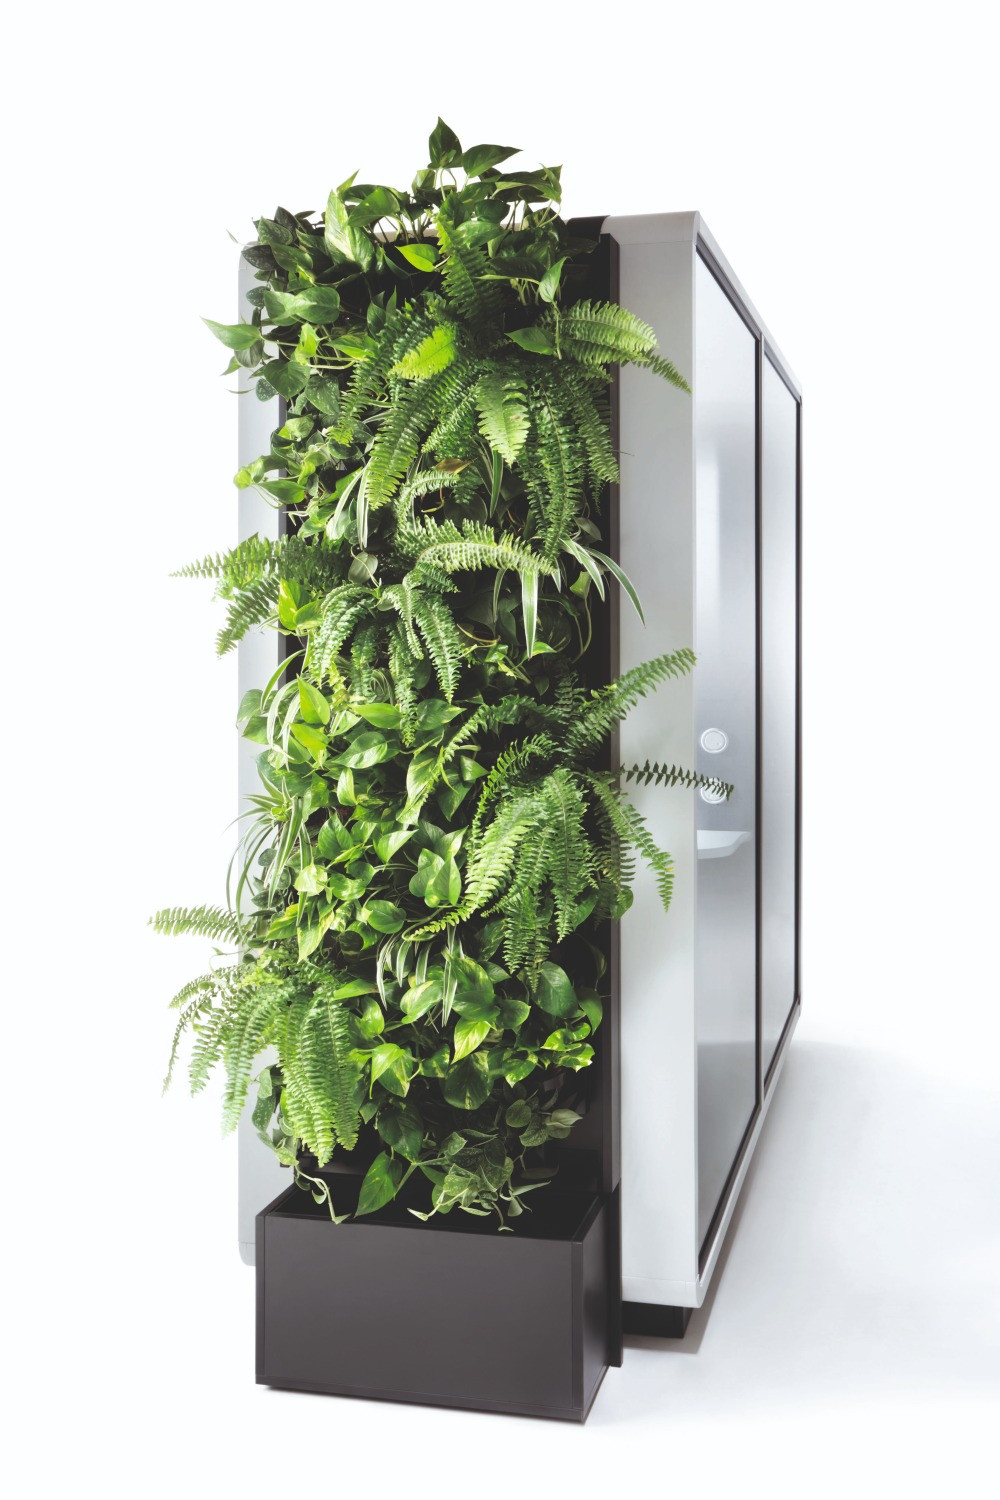 The Hush Green Wall is available in a variety of options.